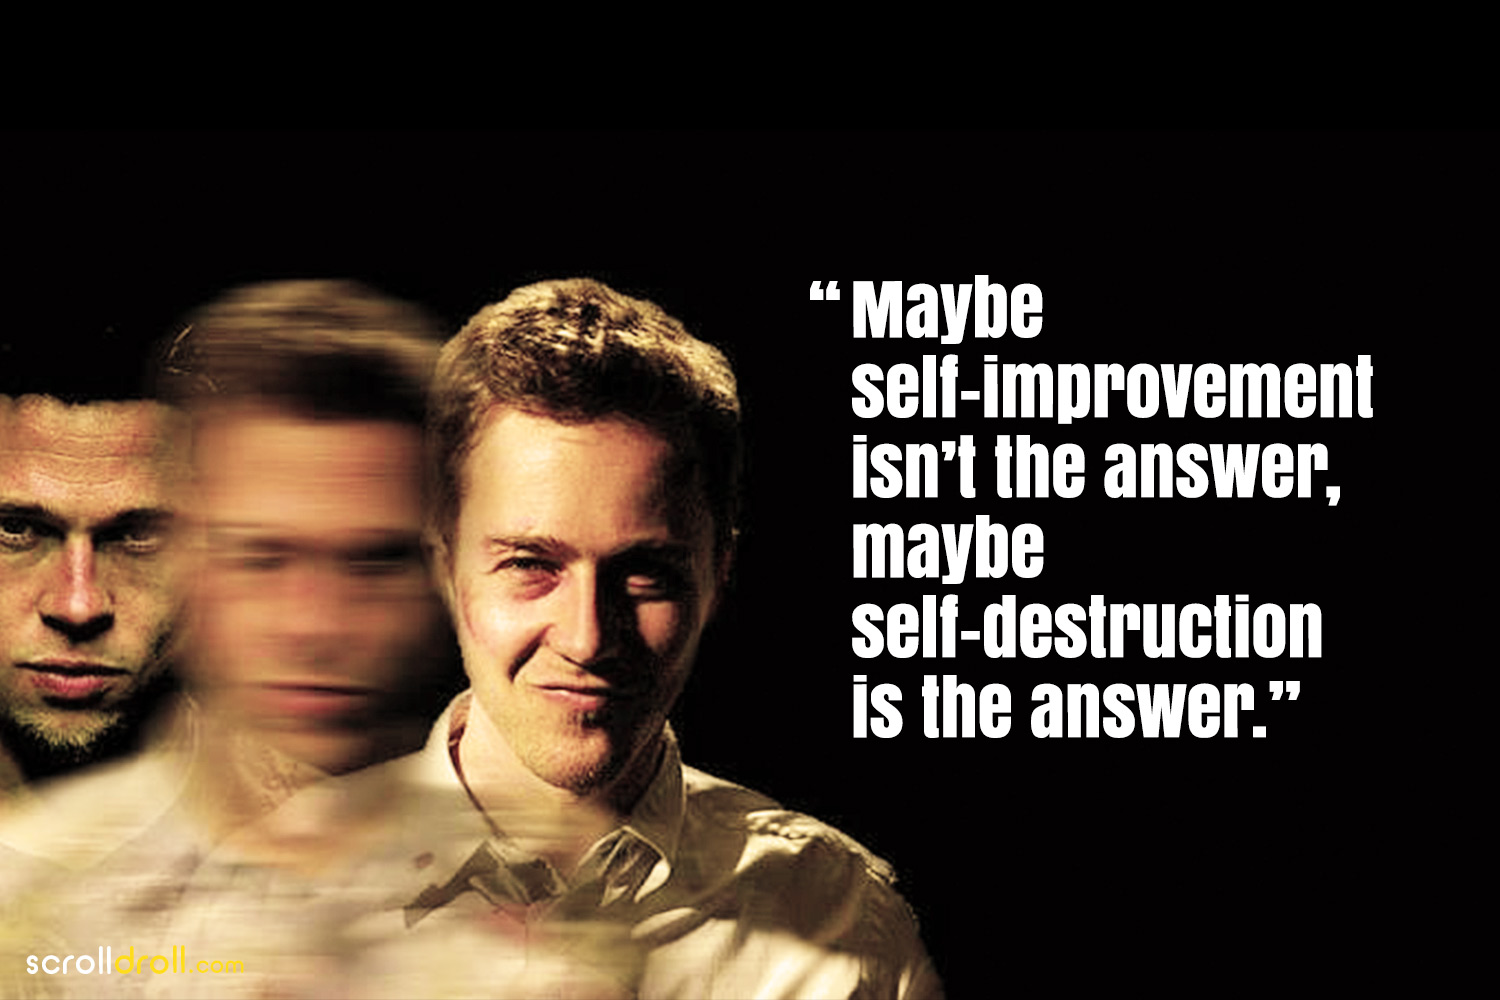 Fight Club Quotes-Maybe self-improvement isn't the answer,maybe self-destruction is the answer.